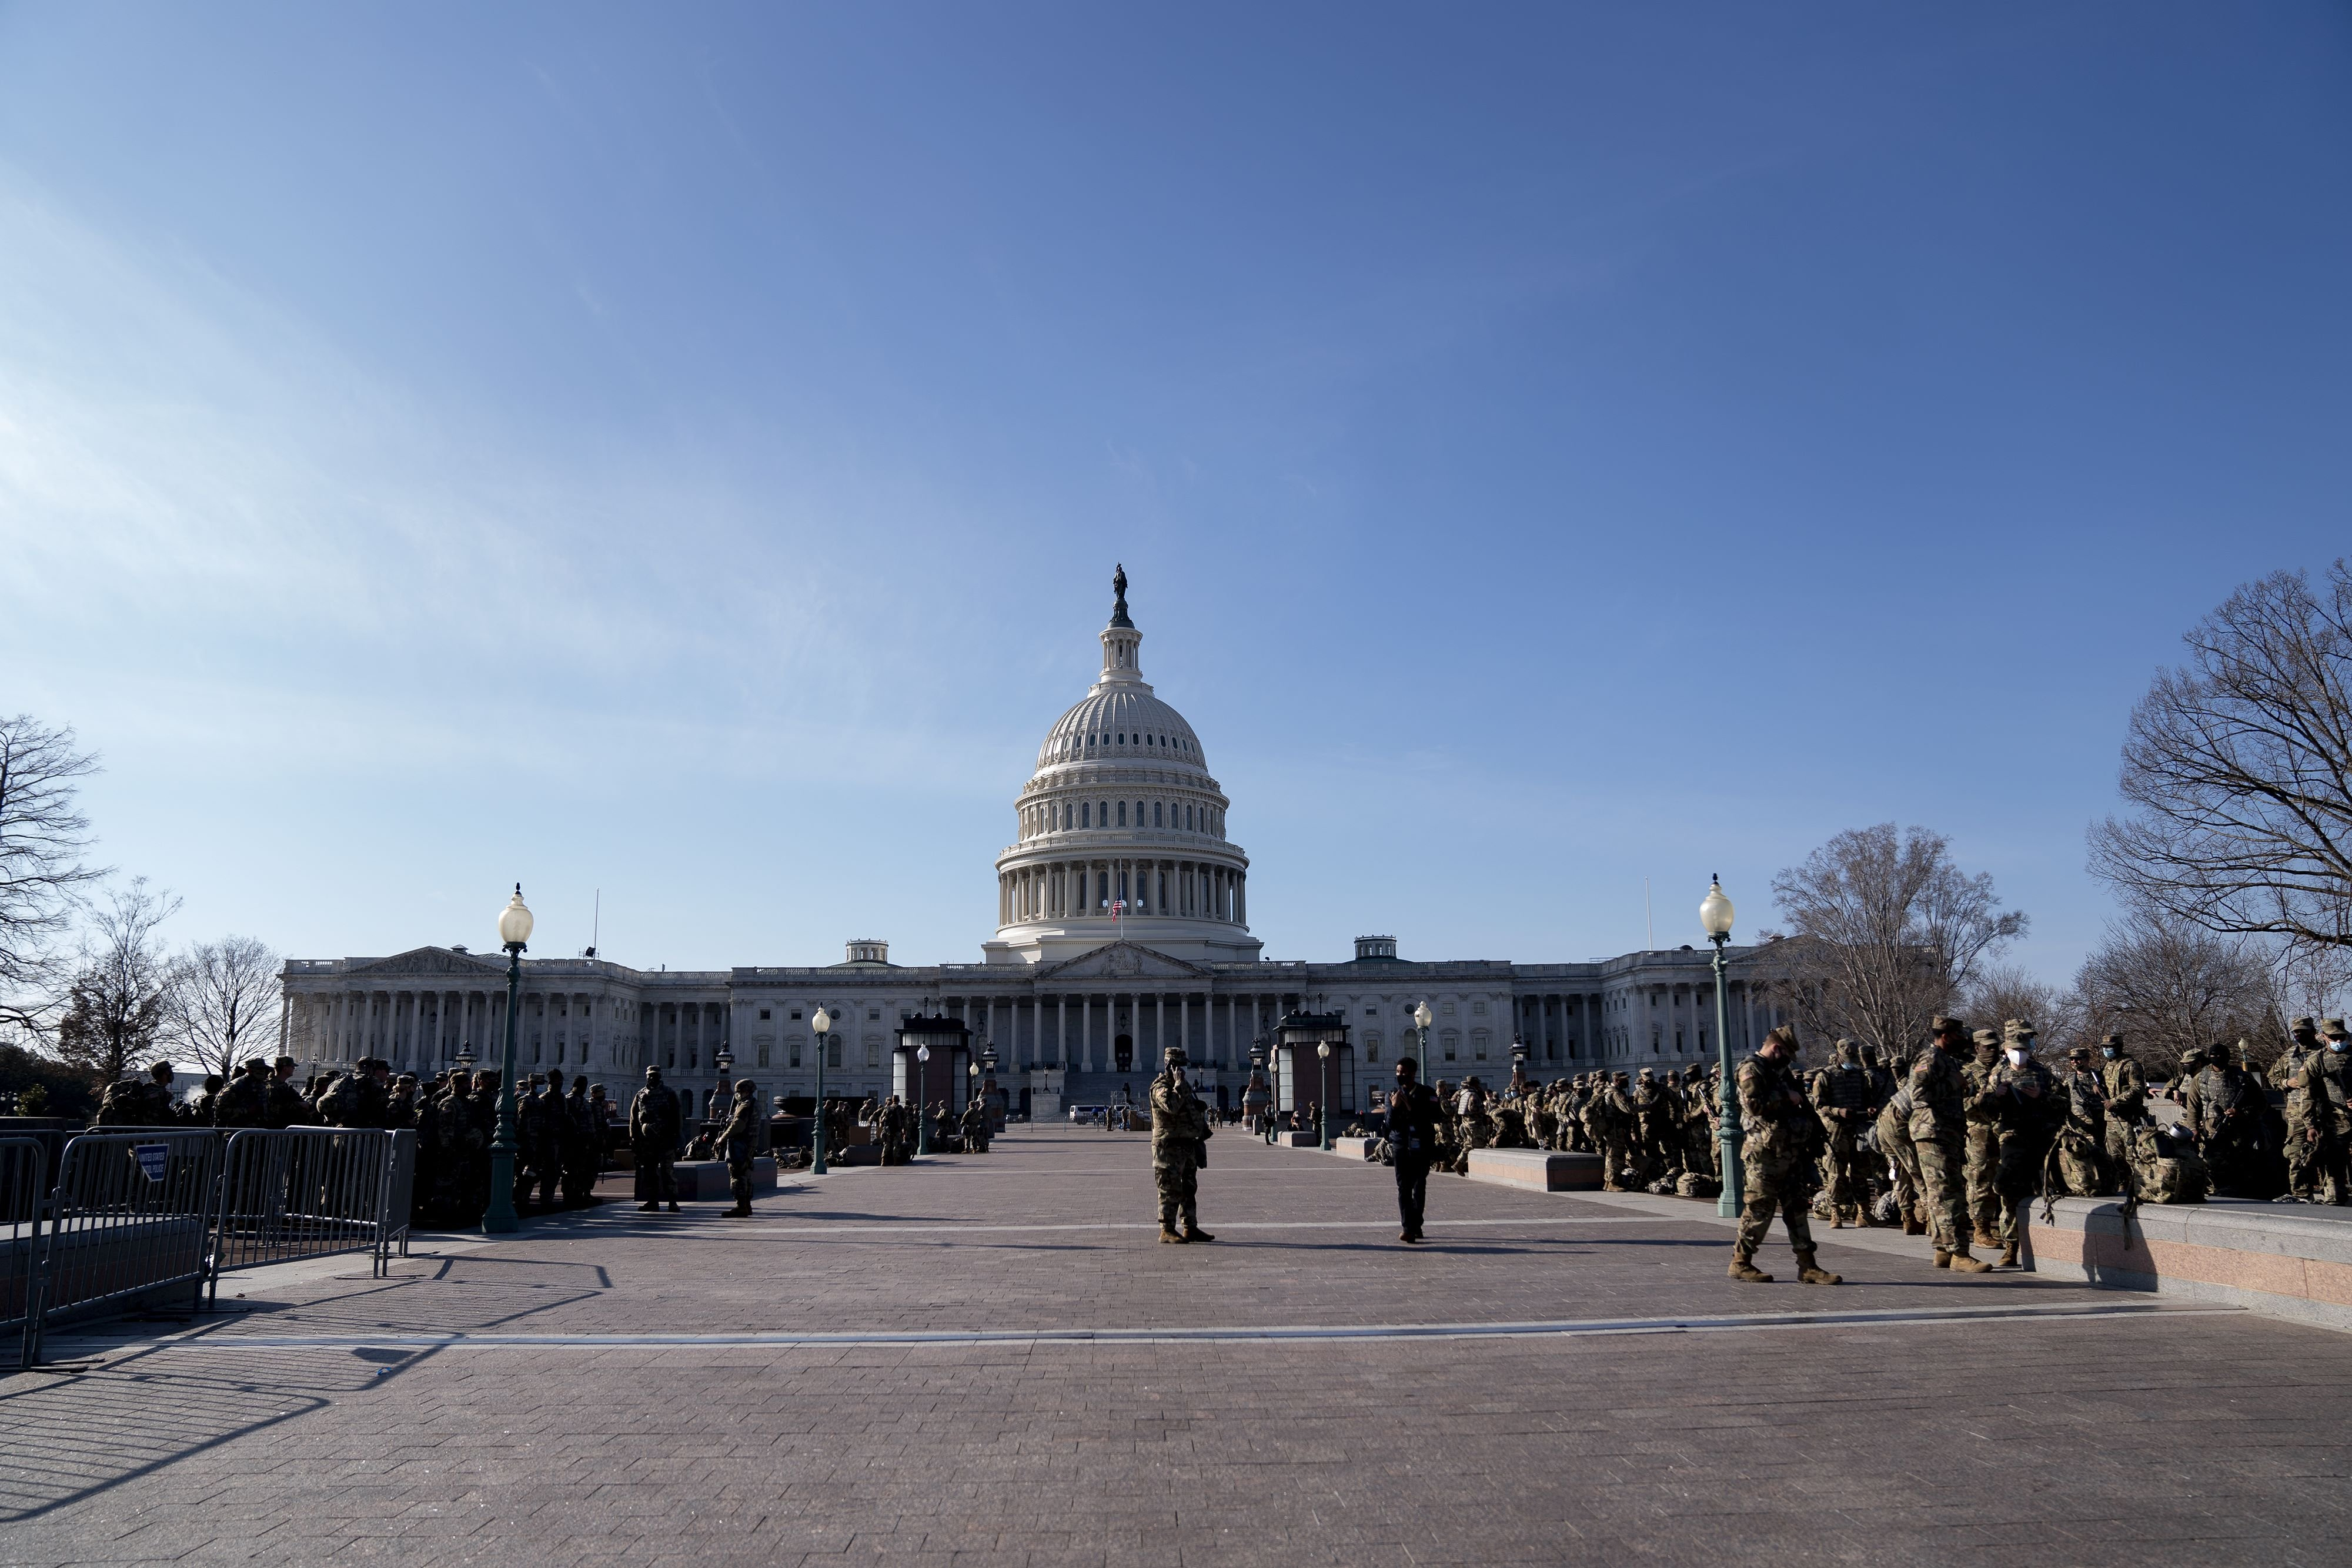 Members of the National Guard gather outside the U.S. Capitol in Washington, D.C., Jan. 14, 2021. (AFP Photo)